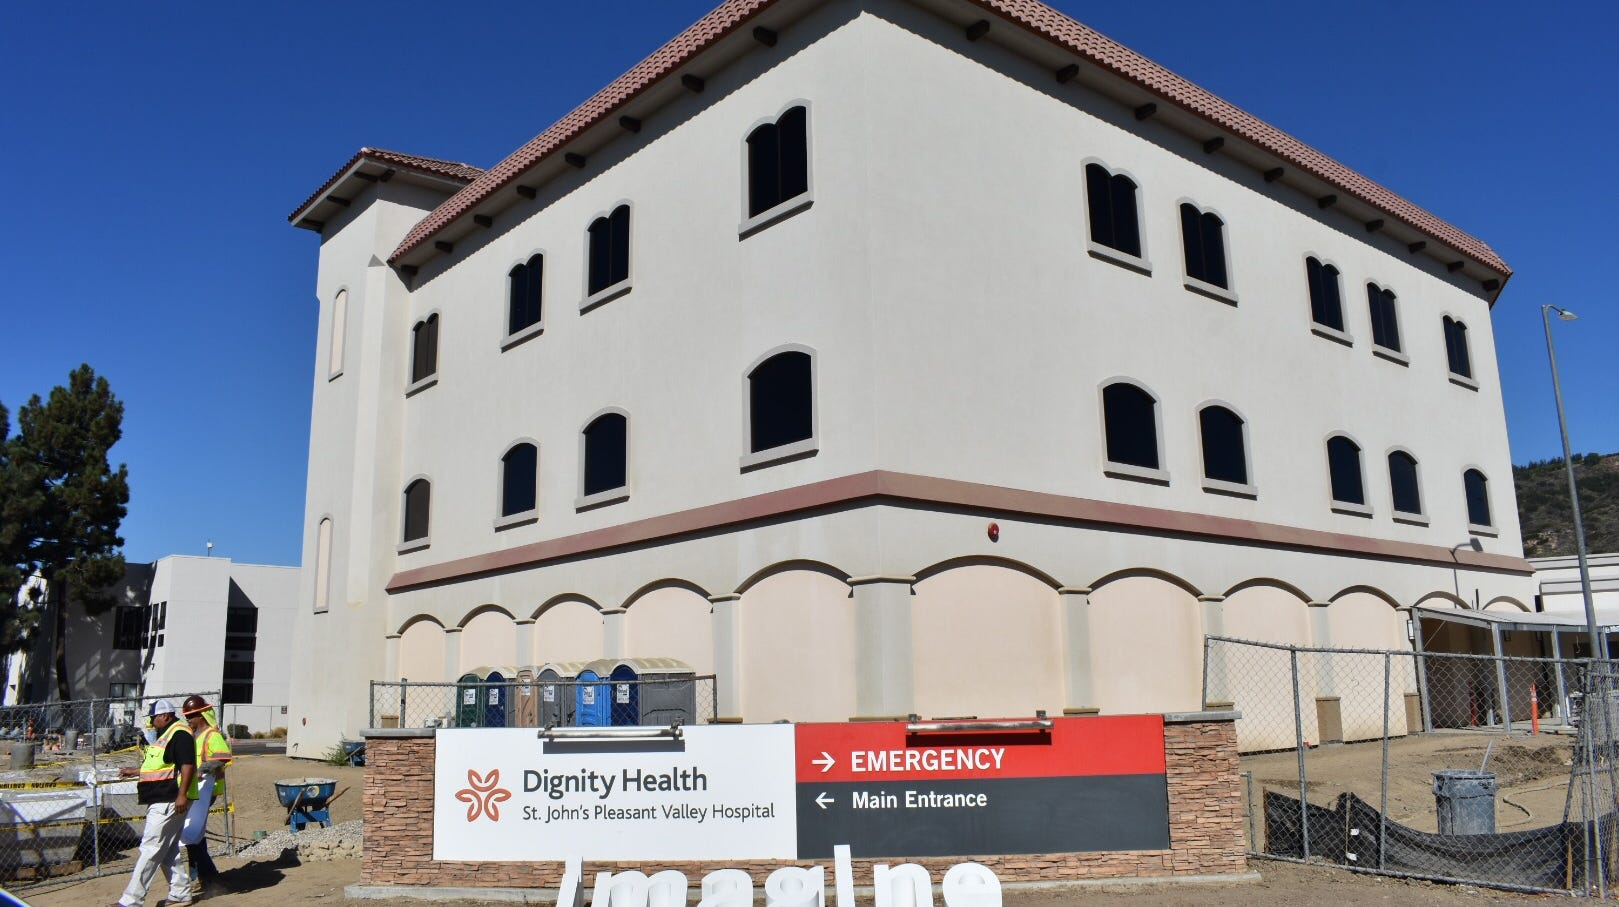 The new St. John's Pleasant Valley Hospital in Camarillo is expected to open for patients before Thanksgiving. A grand opening event will be held Saturday.